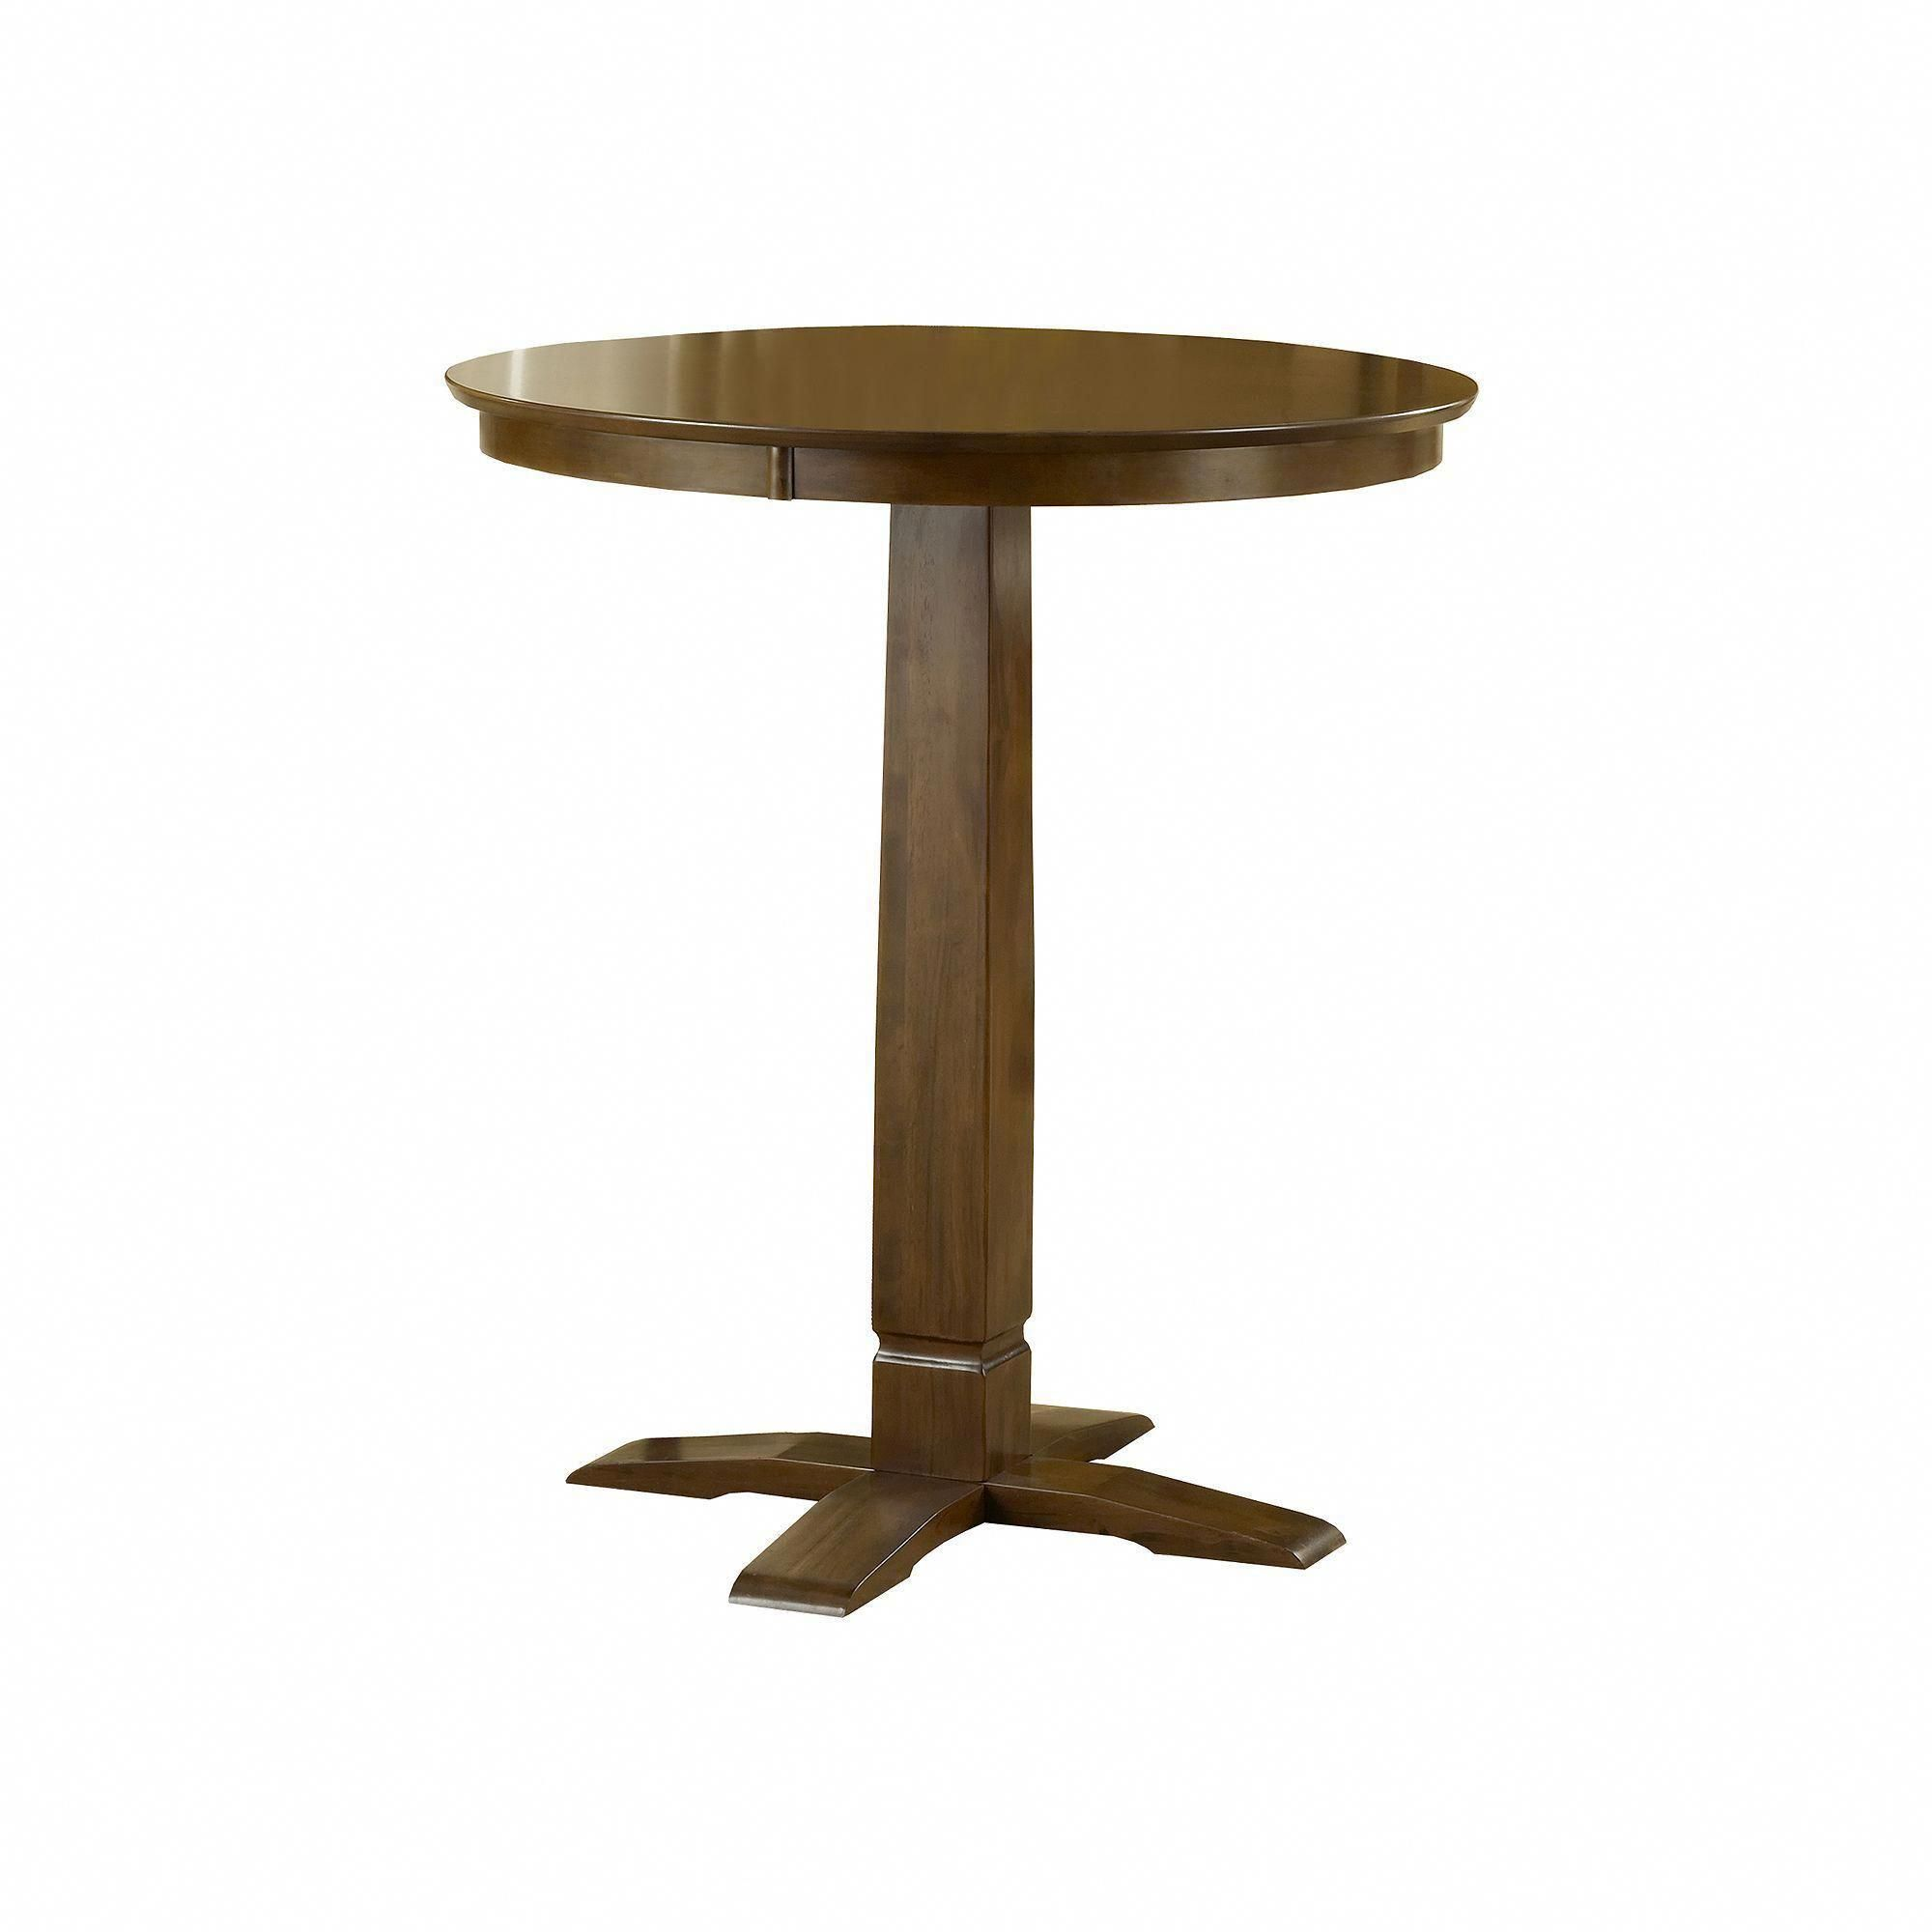 193 Antique Beige Round End Table Birchlane End Tables